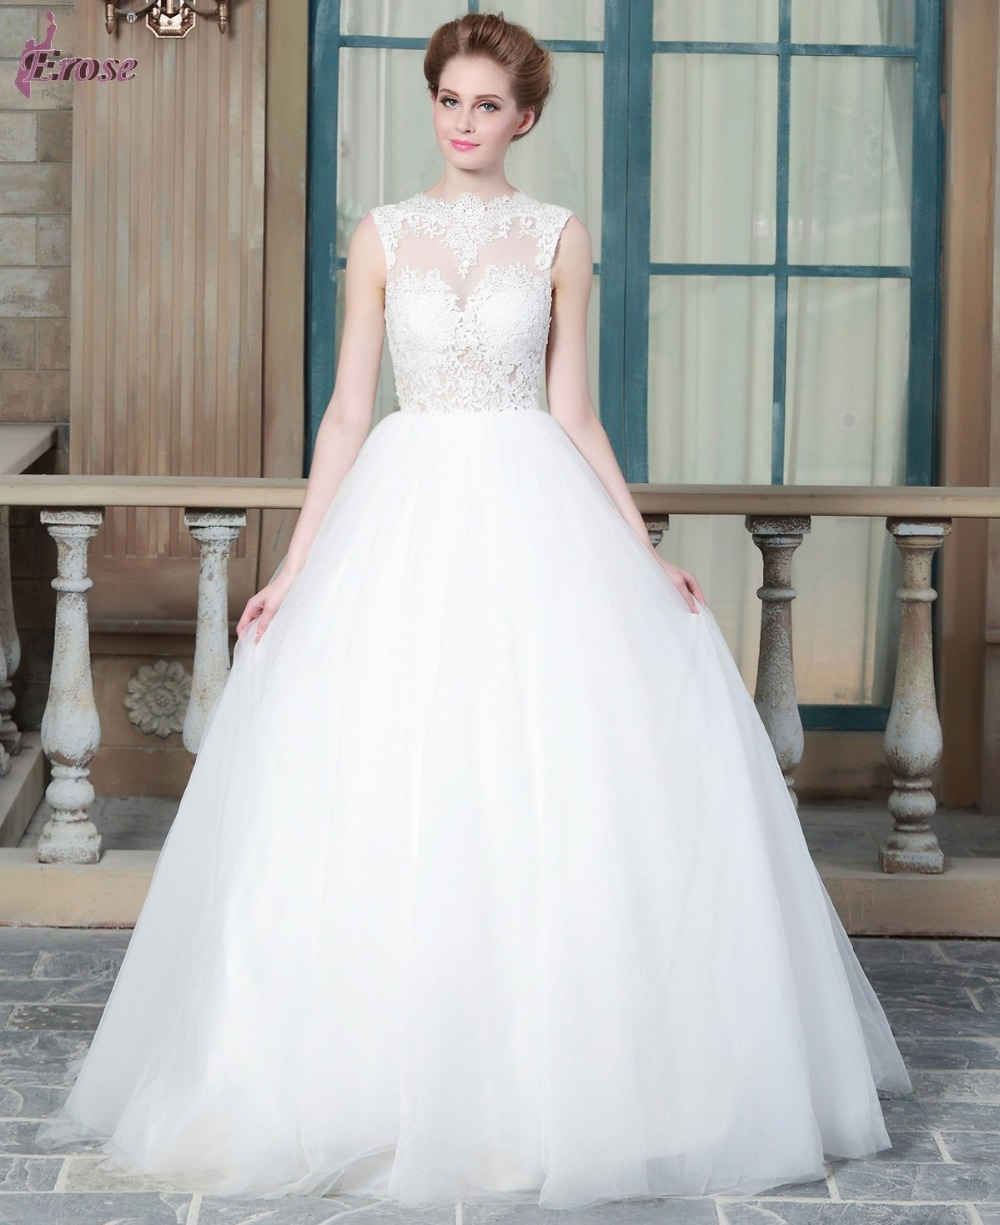 Ball Gown Sheer Lace Bodice Sexy Alibaba Bridal Gowns Made In China Wedding Gowns With Keyhole Back ERW047(China (Mainland))